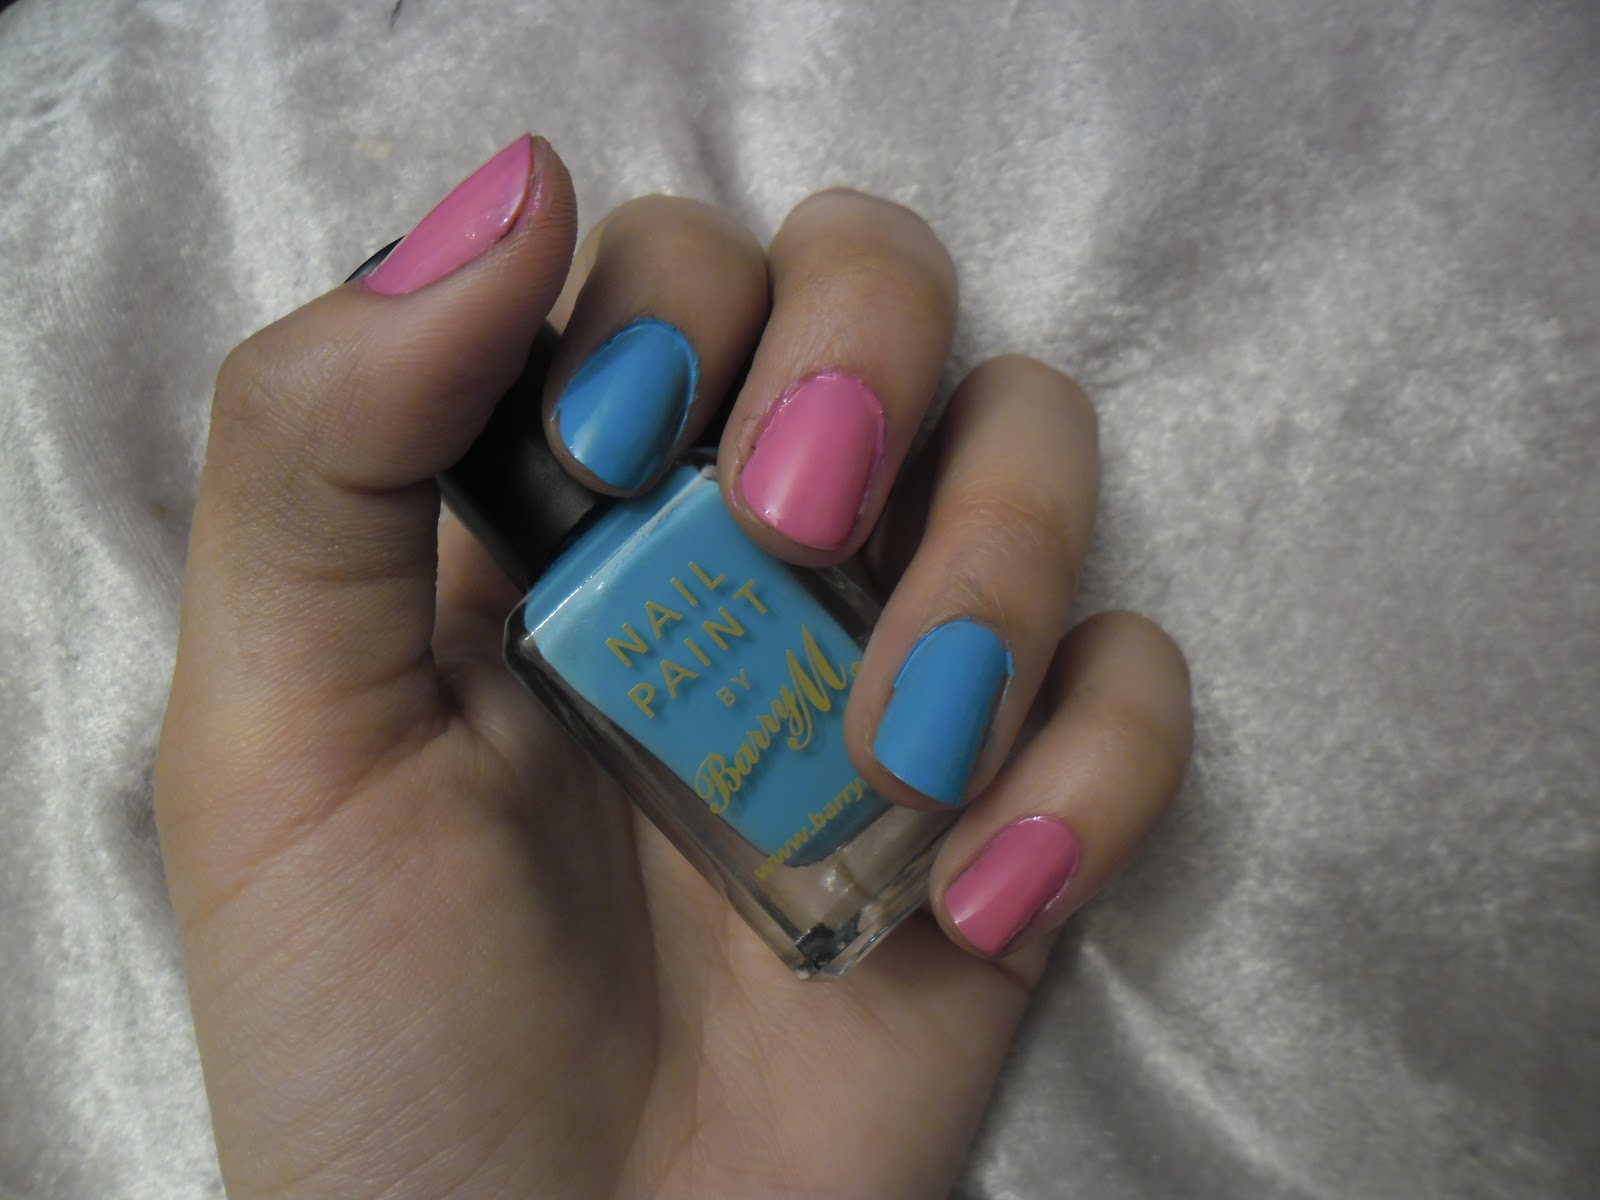 Nail art 3 block colour fashernably late ive chosen to do alternative nails in a barry m powder blue gosh baby pink but you can stick to one prinsesfo Image collections